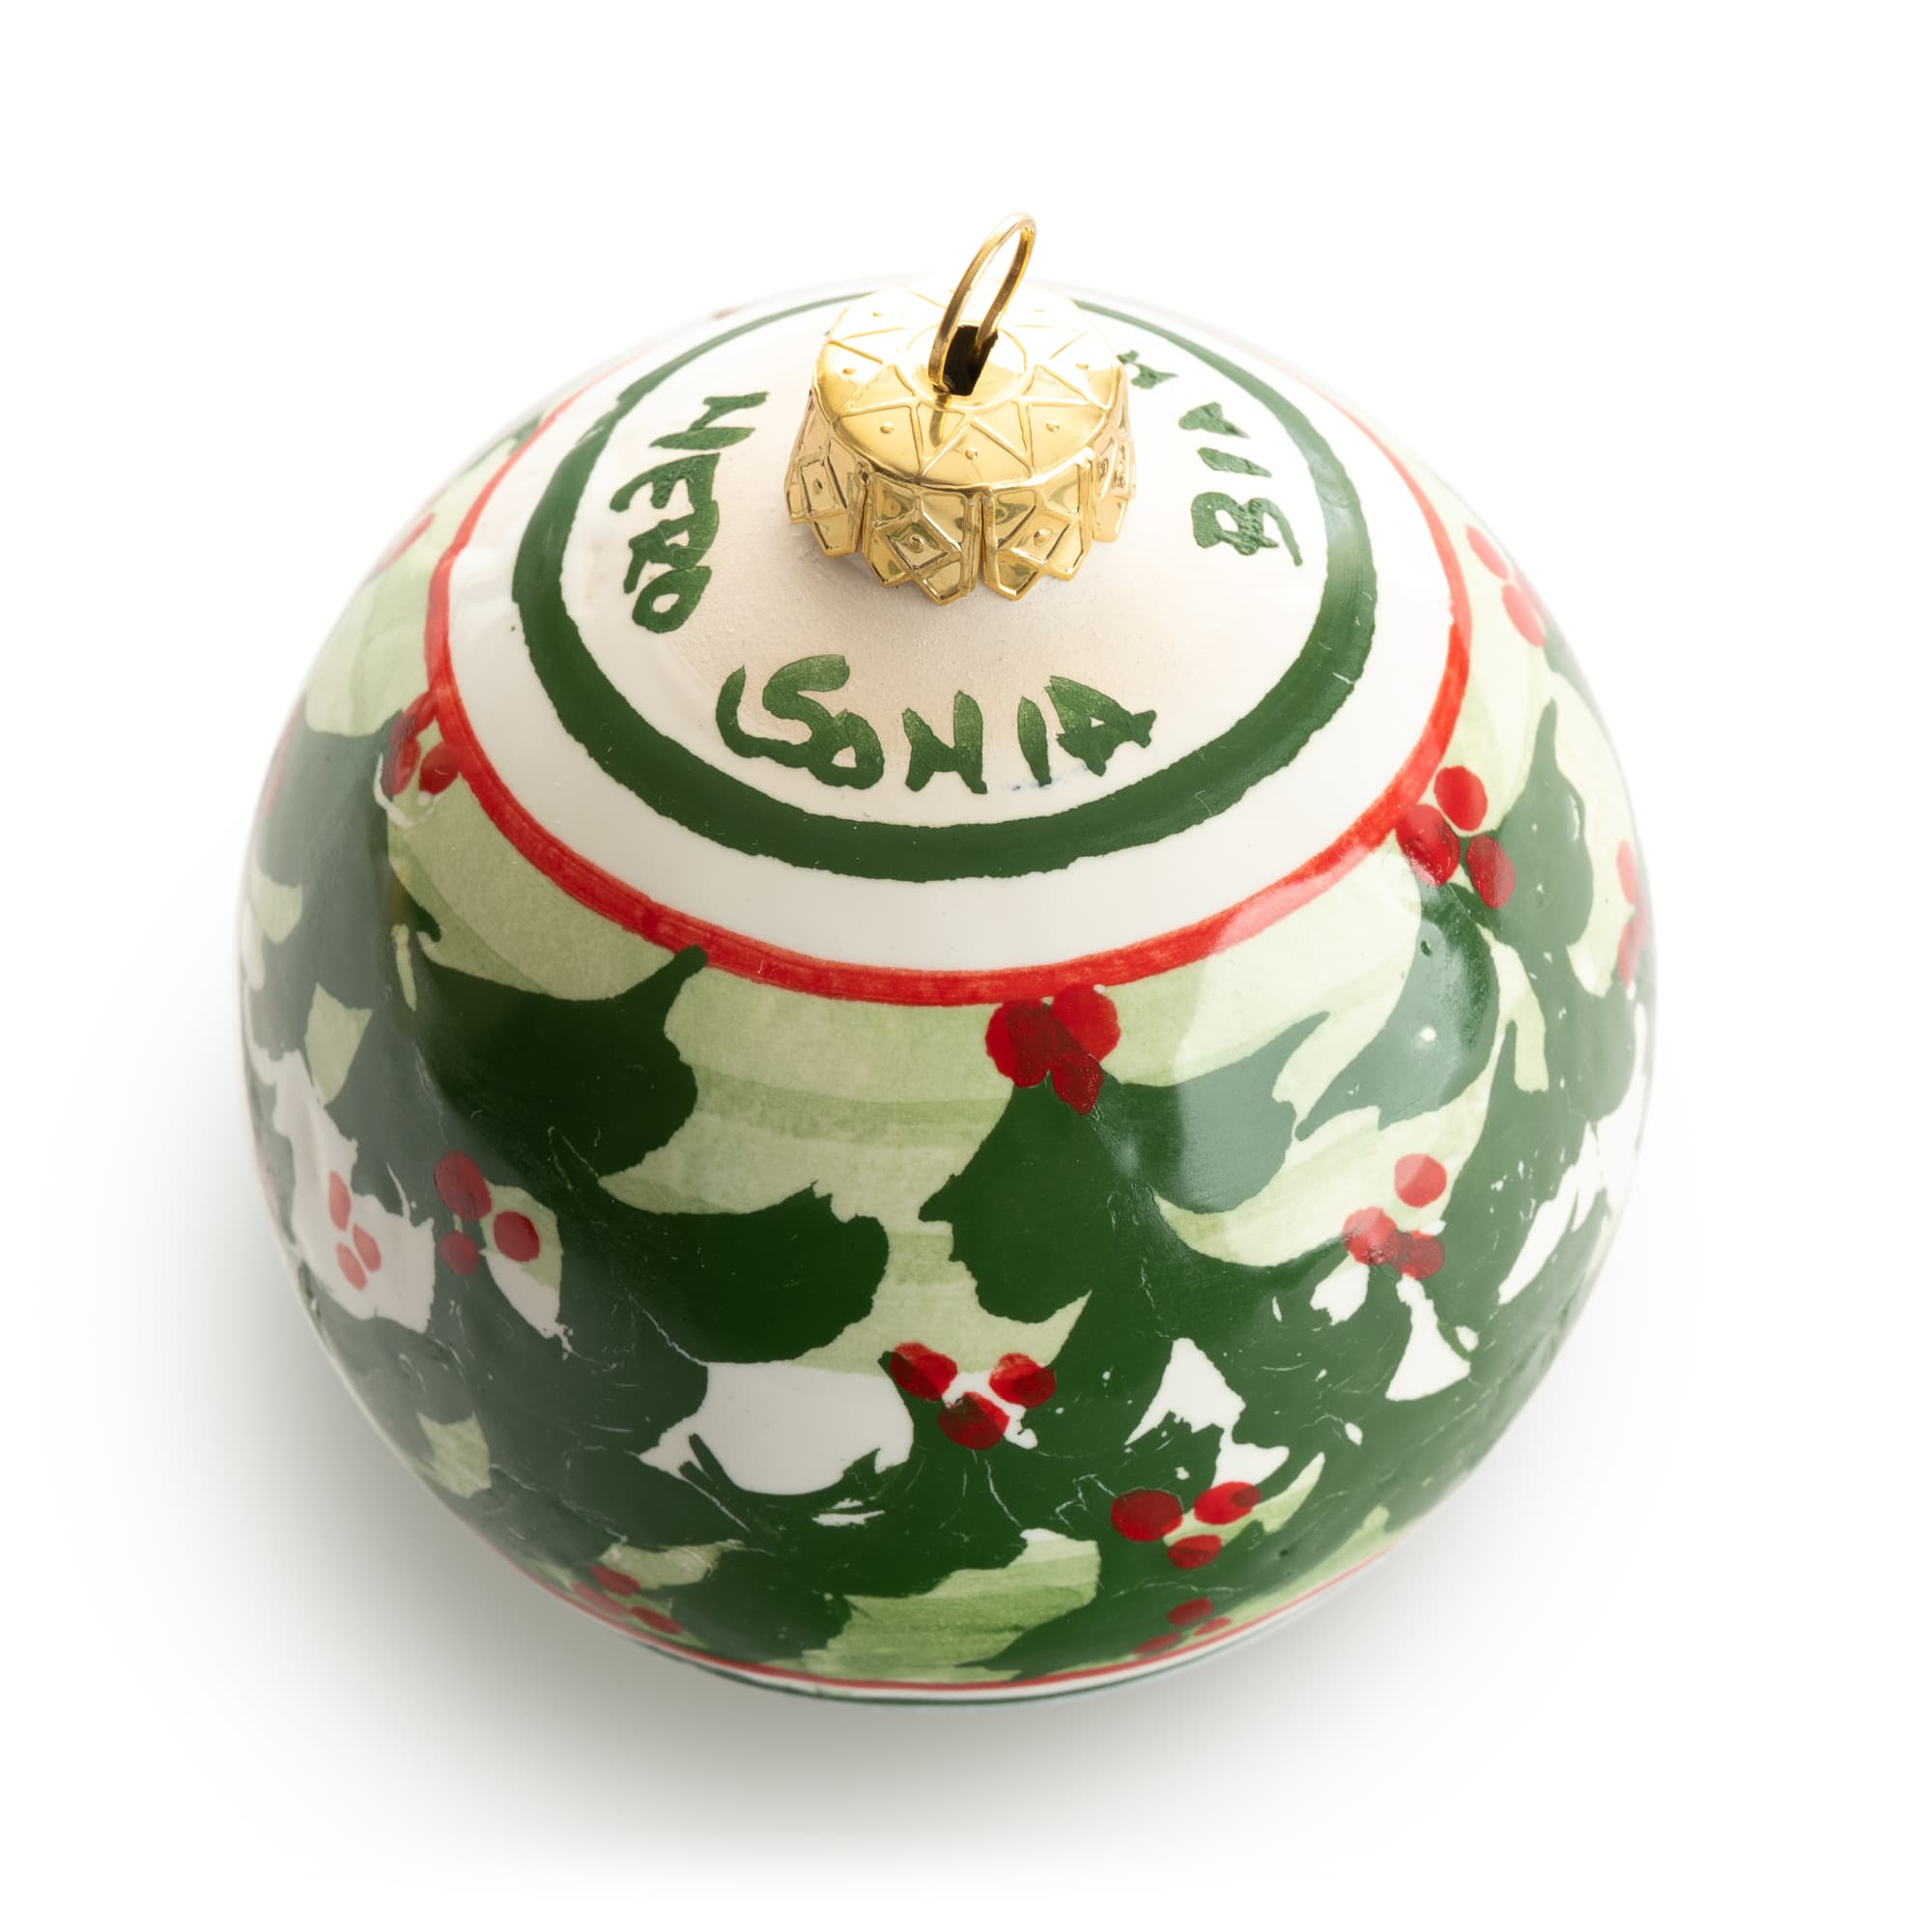 Personalized Green Holly Ornament from Siena